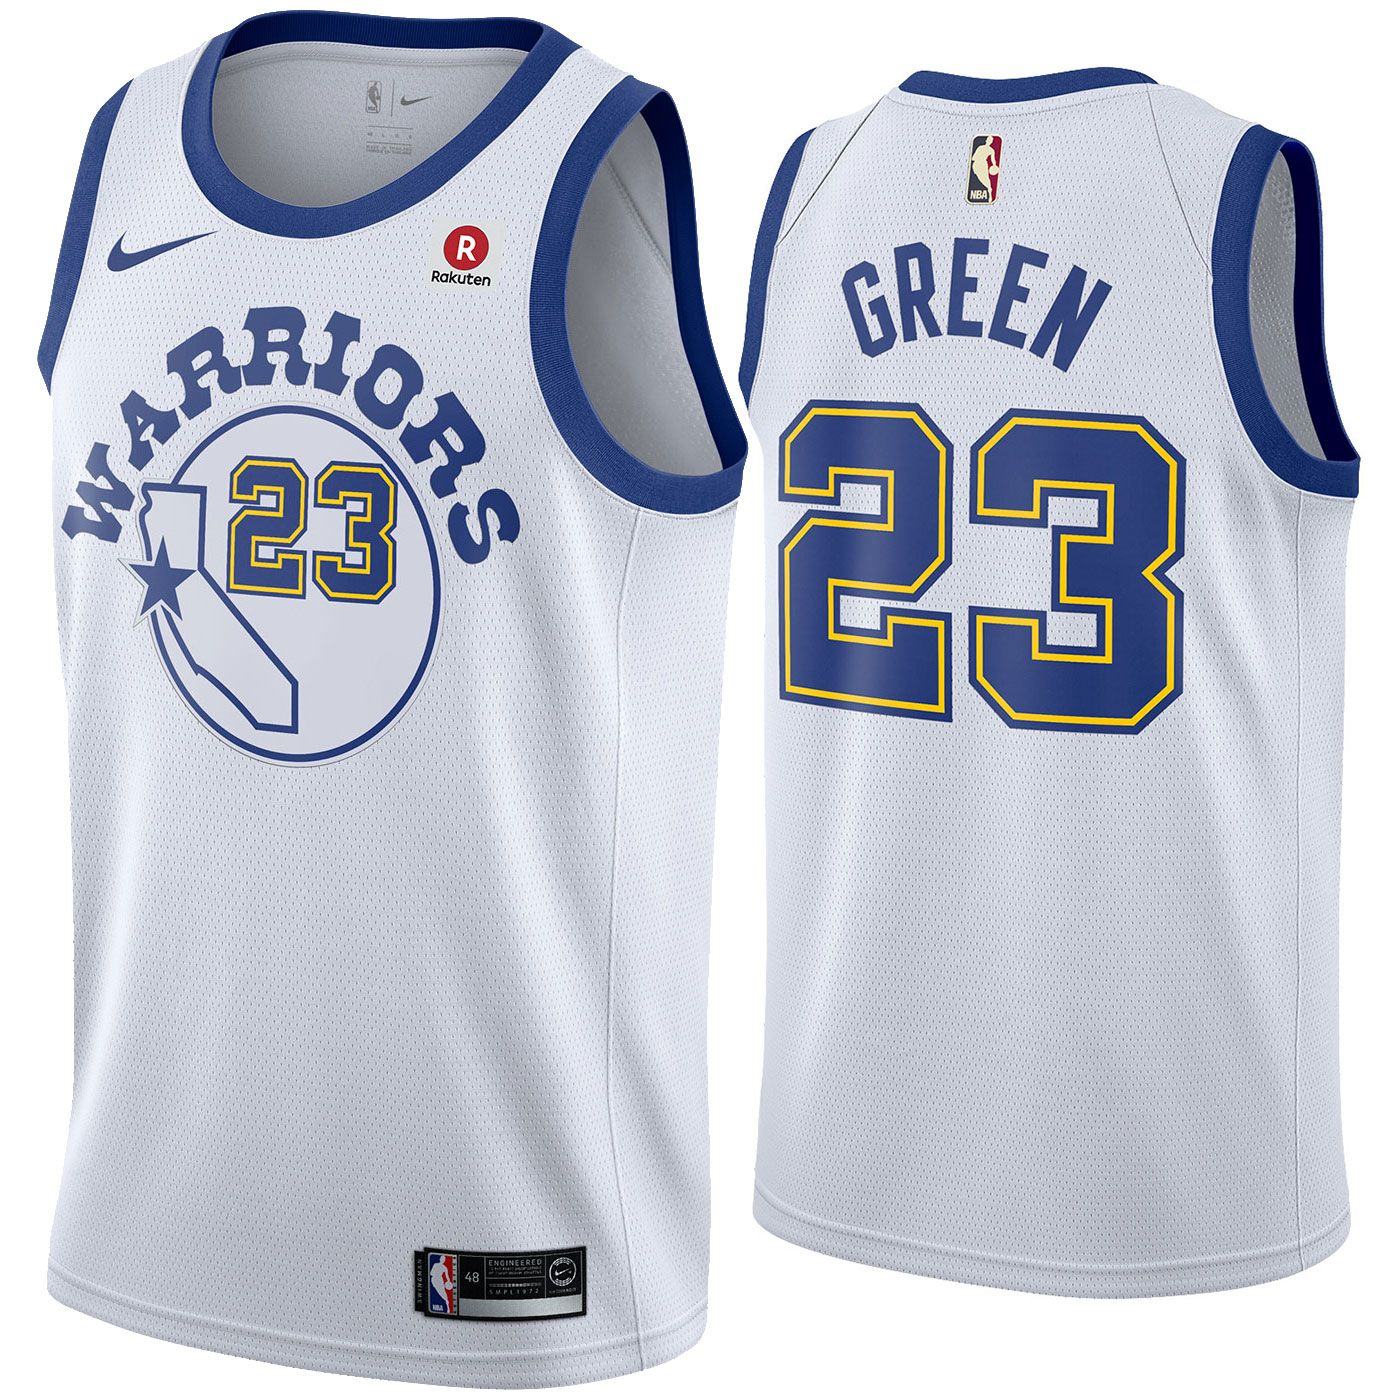 4317ab15a36 Golden State Warriors Nike Dri-FIT Men s Draymond Green  23 Swingman  Hardwood Classic Jersey - White